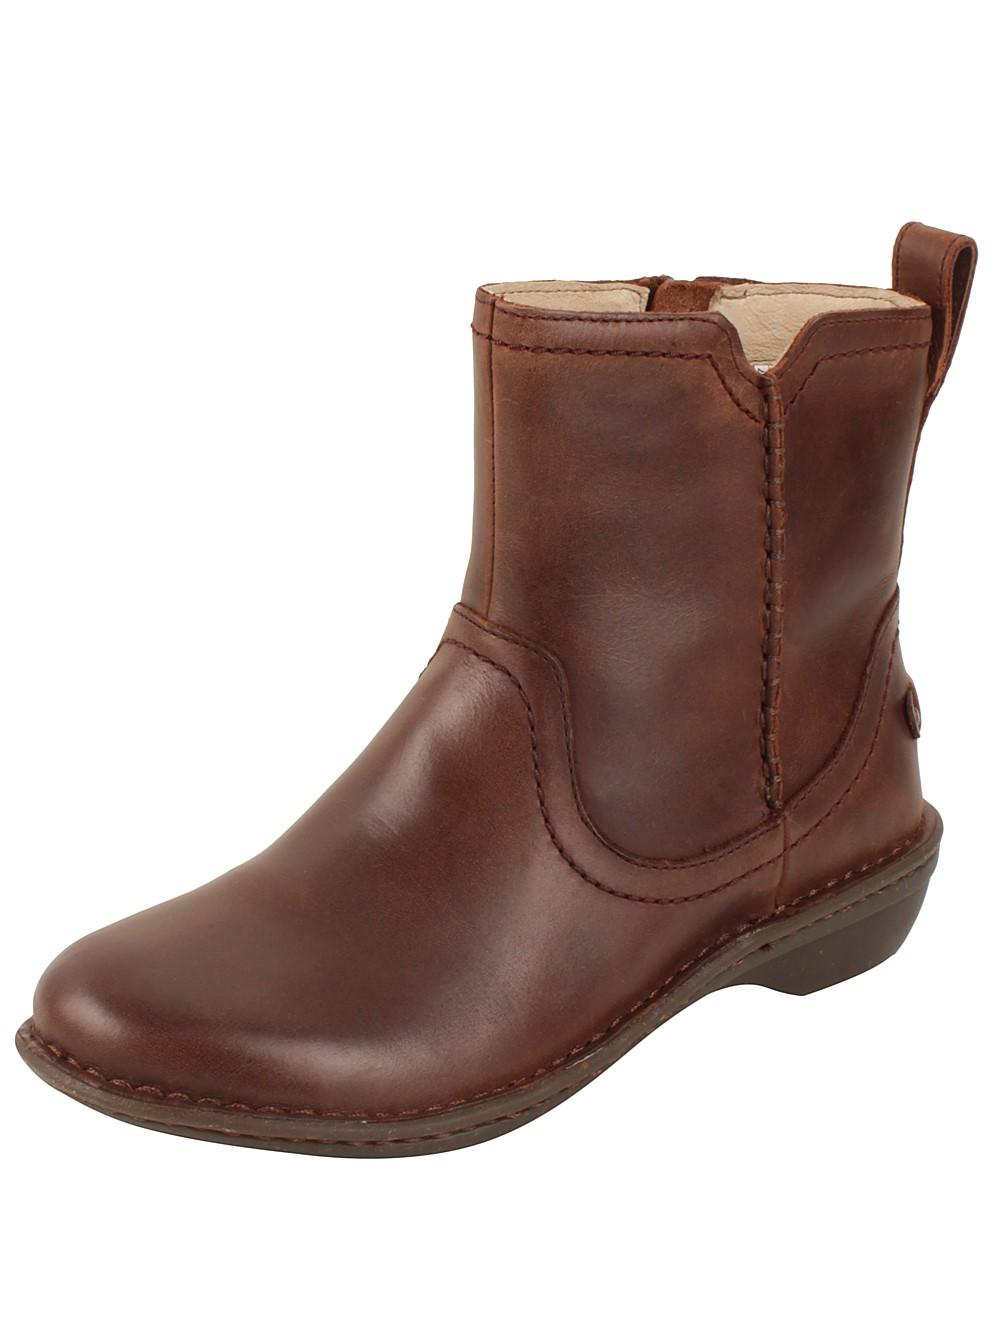 dd78642d02b Lyst - UGG Neevah Women Us 10 Brown Ankle Boot in Brown